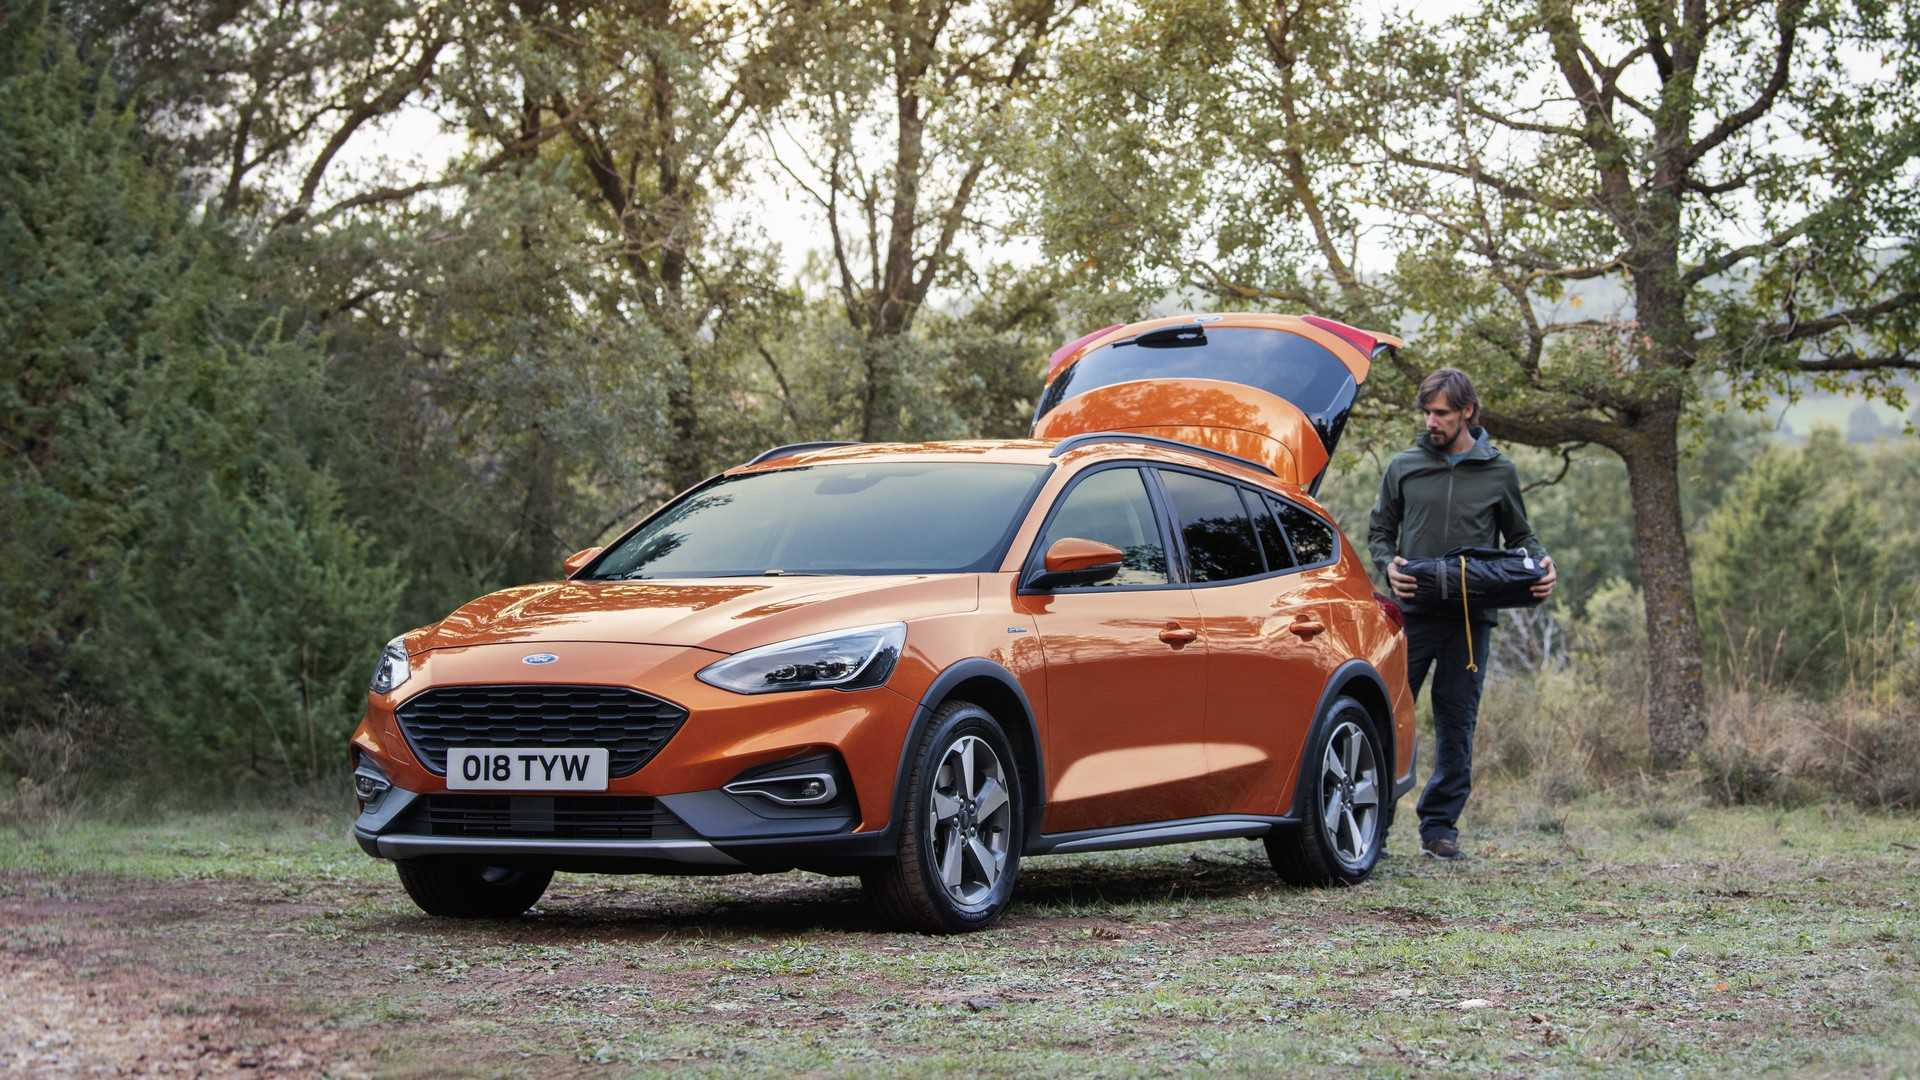 75 The 2020 Ford Focus Active Price and Review with 2020 Ford Focus Active